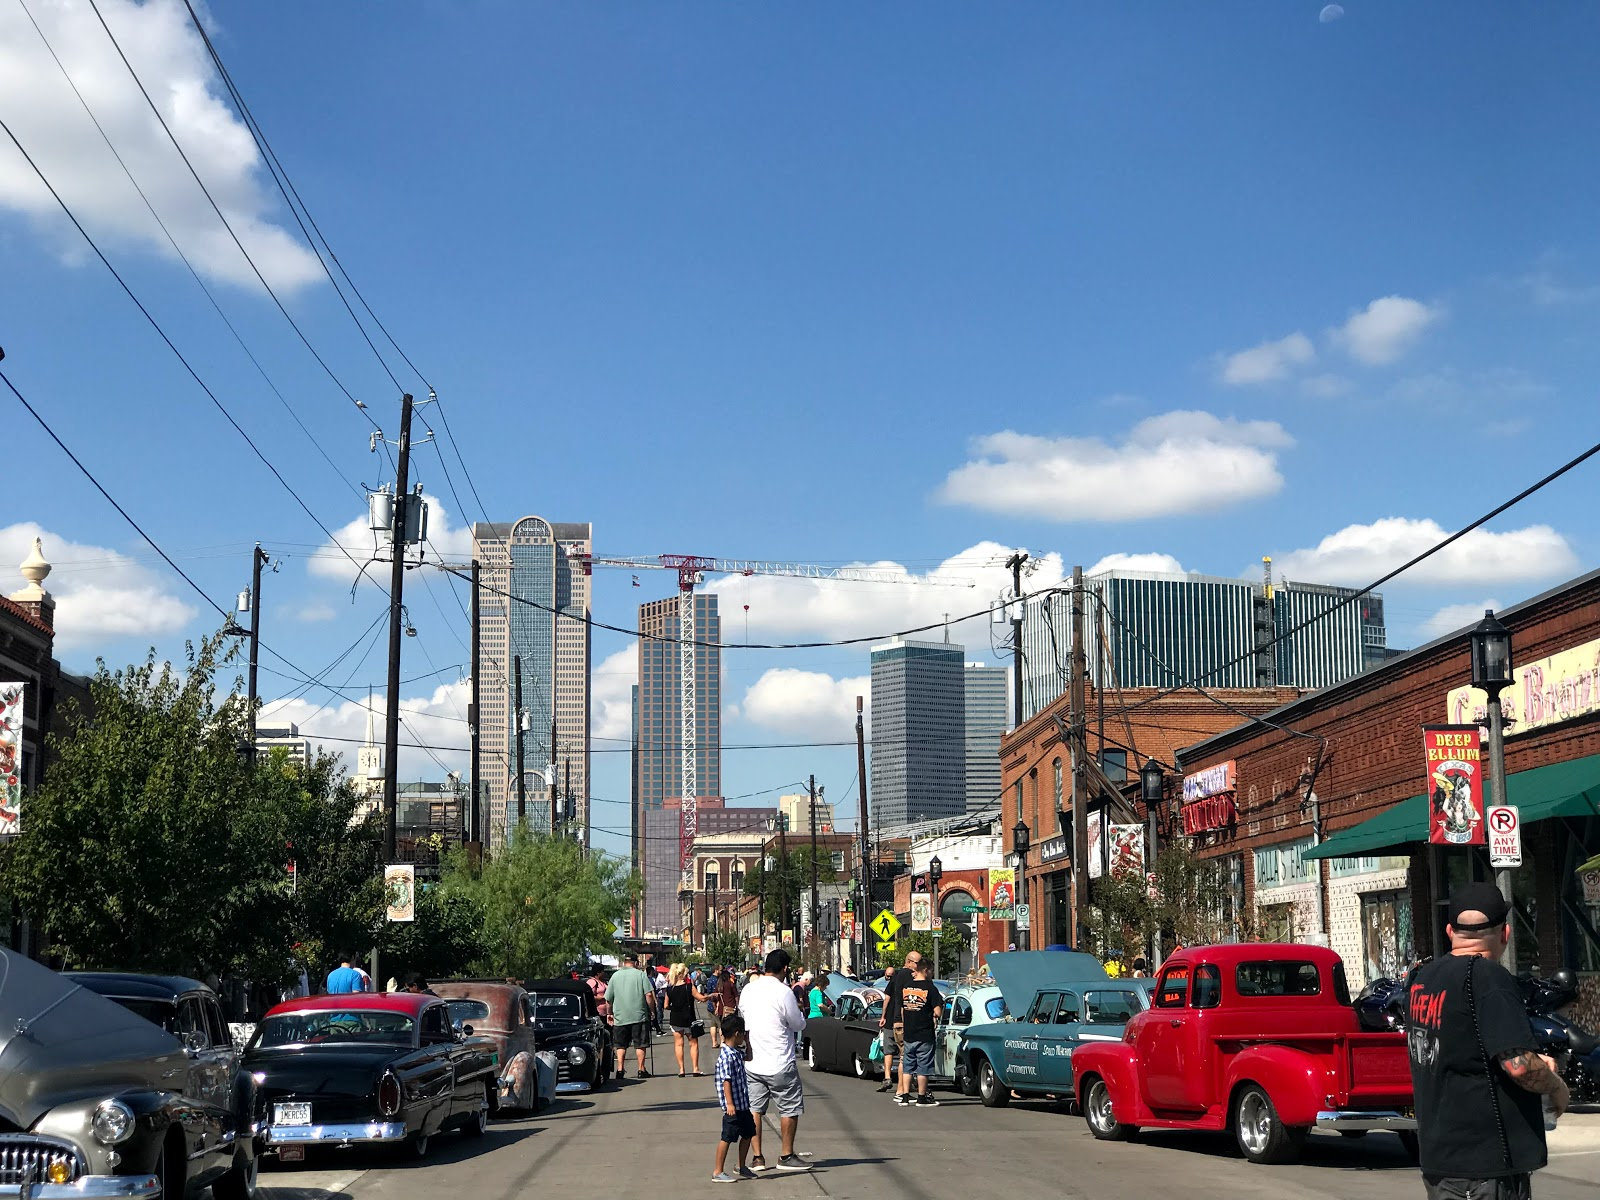 Image: People walking and watching the Car Show in Deep Ellum TeThe Invasion Car Show Deep Ellum Dallas Texasxas: